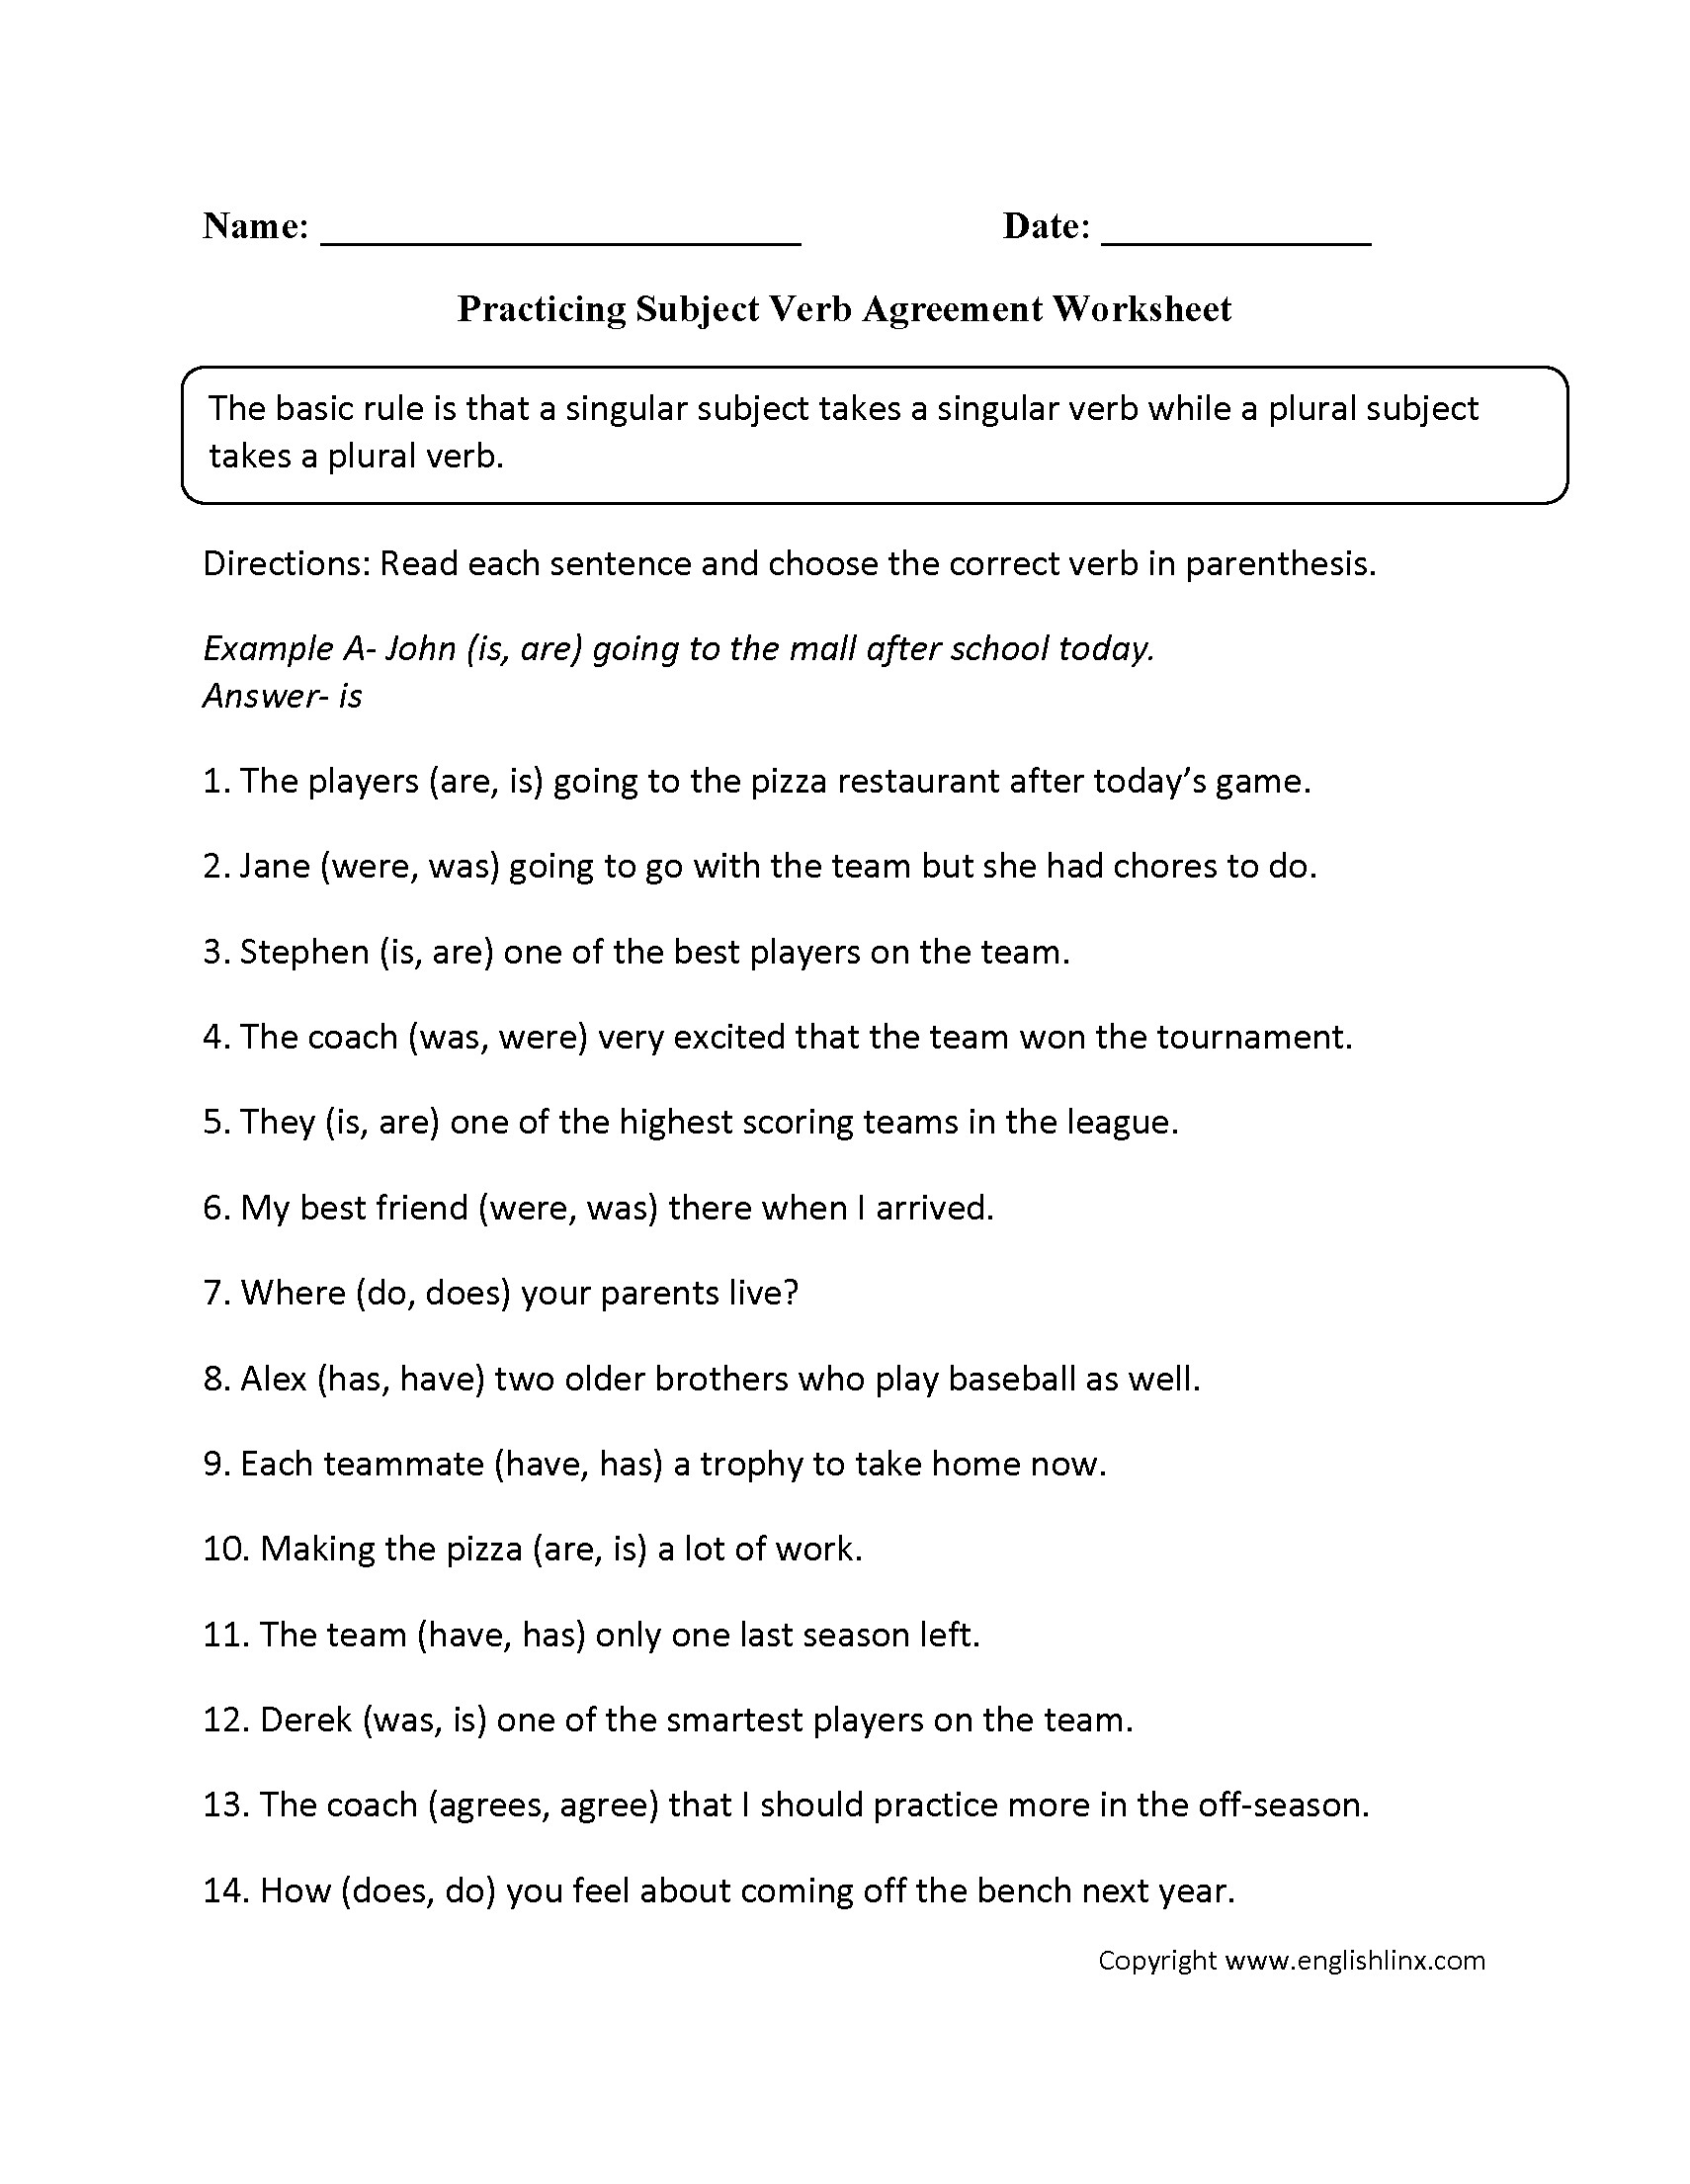 Subject Verb Agreement Worksheet Answer Sheet